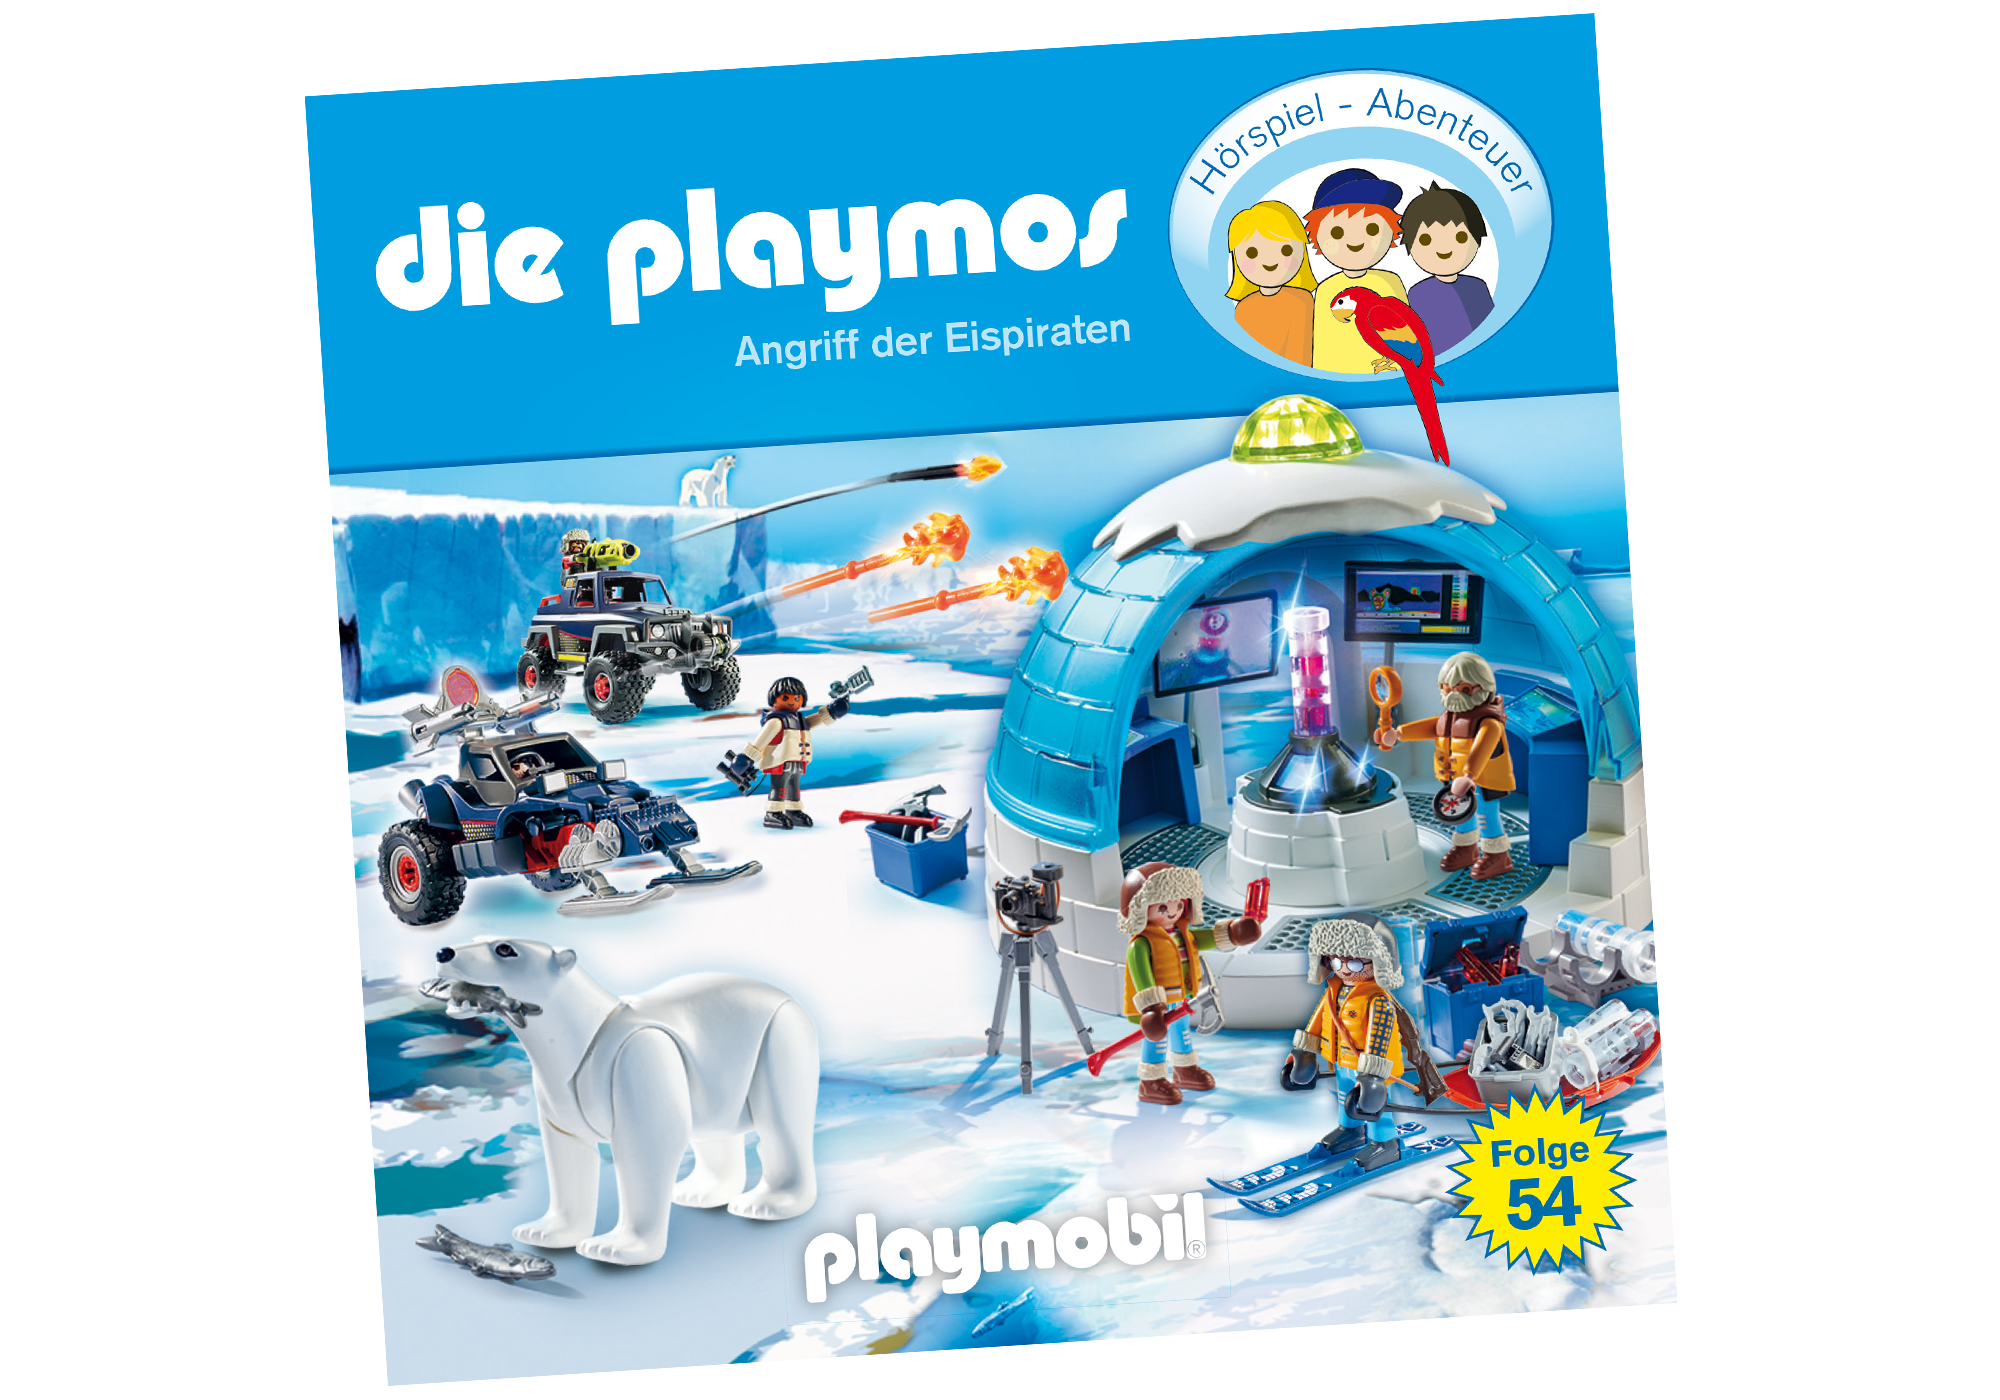 http://media.playmobil.com/i/playmobil/80483_product_detail